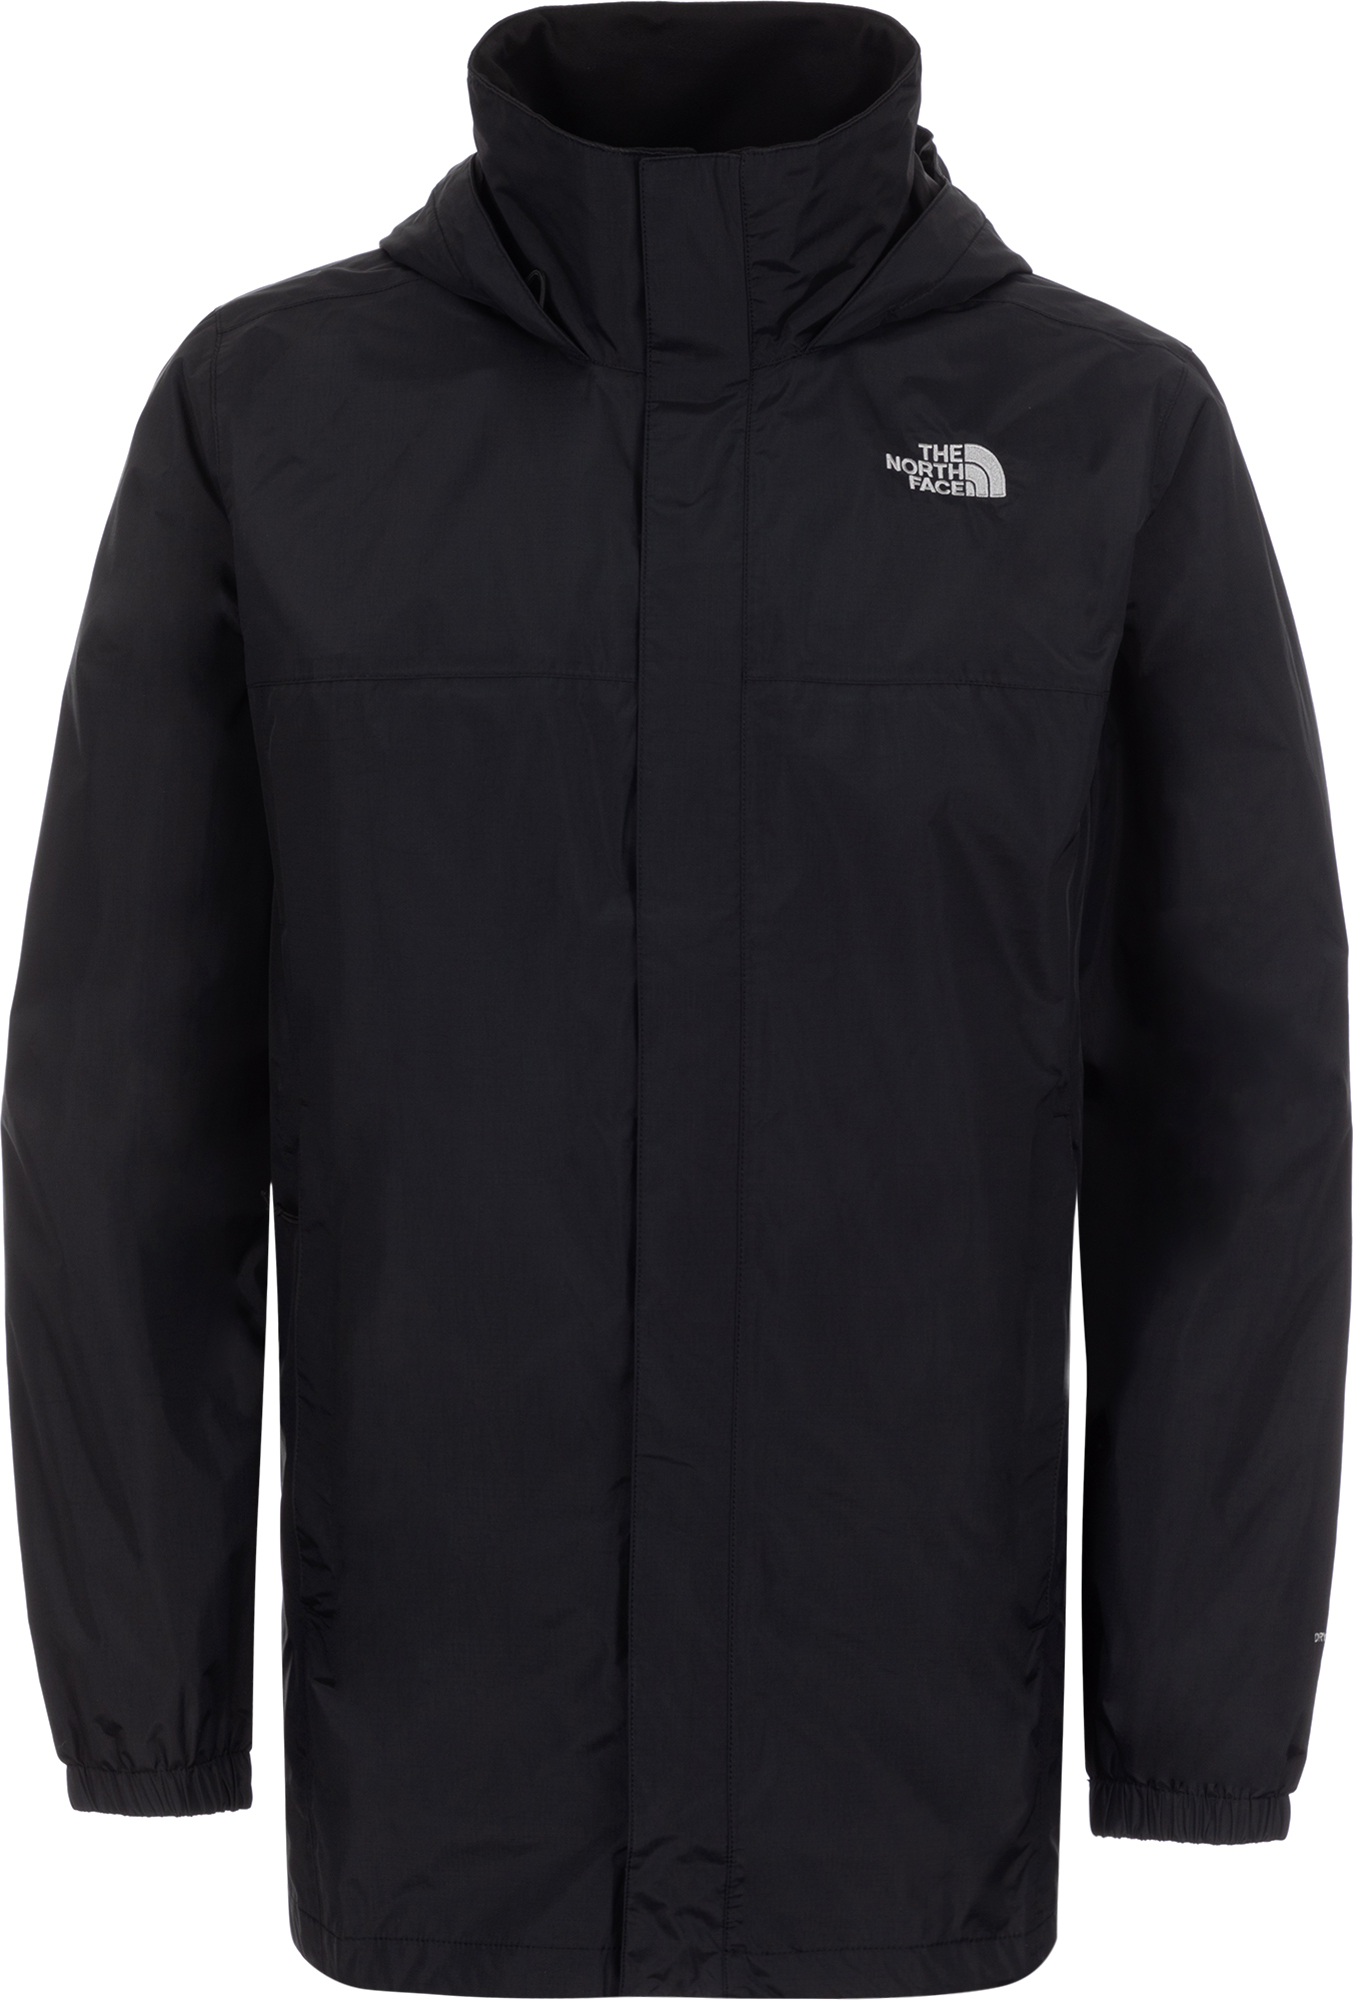 The North Face Ветровка мужская The North Face Resolve, размер 48 the north face orcadas parka